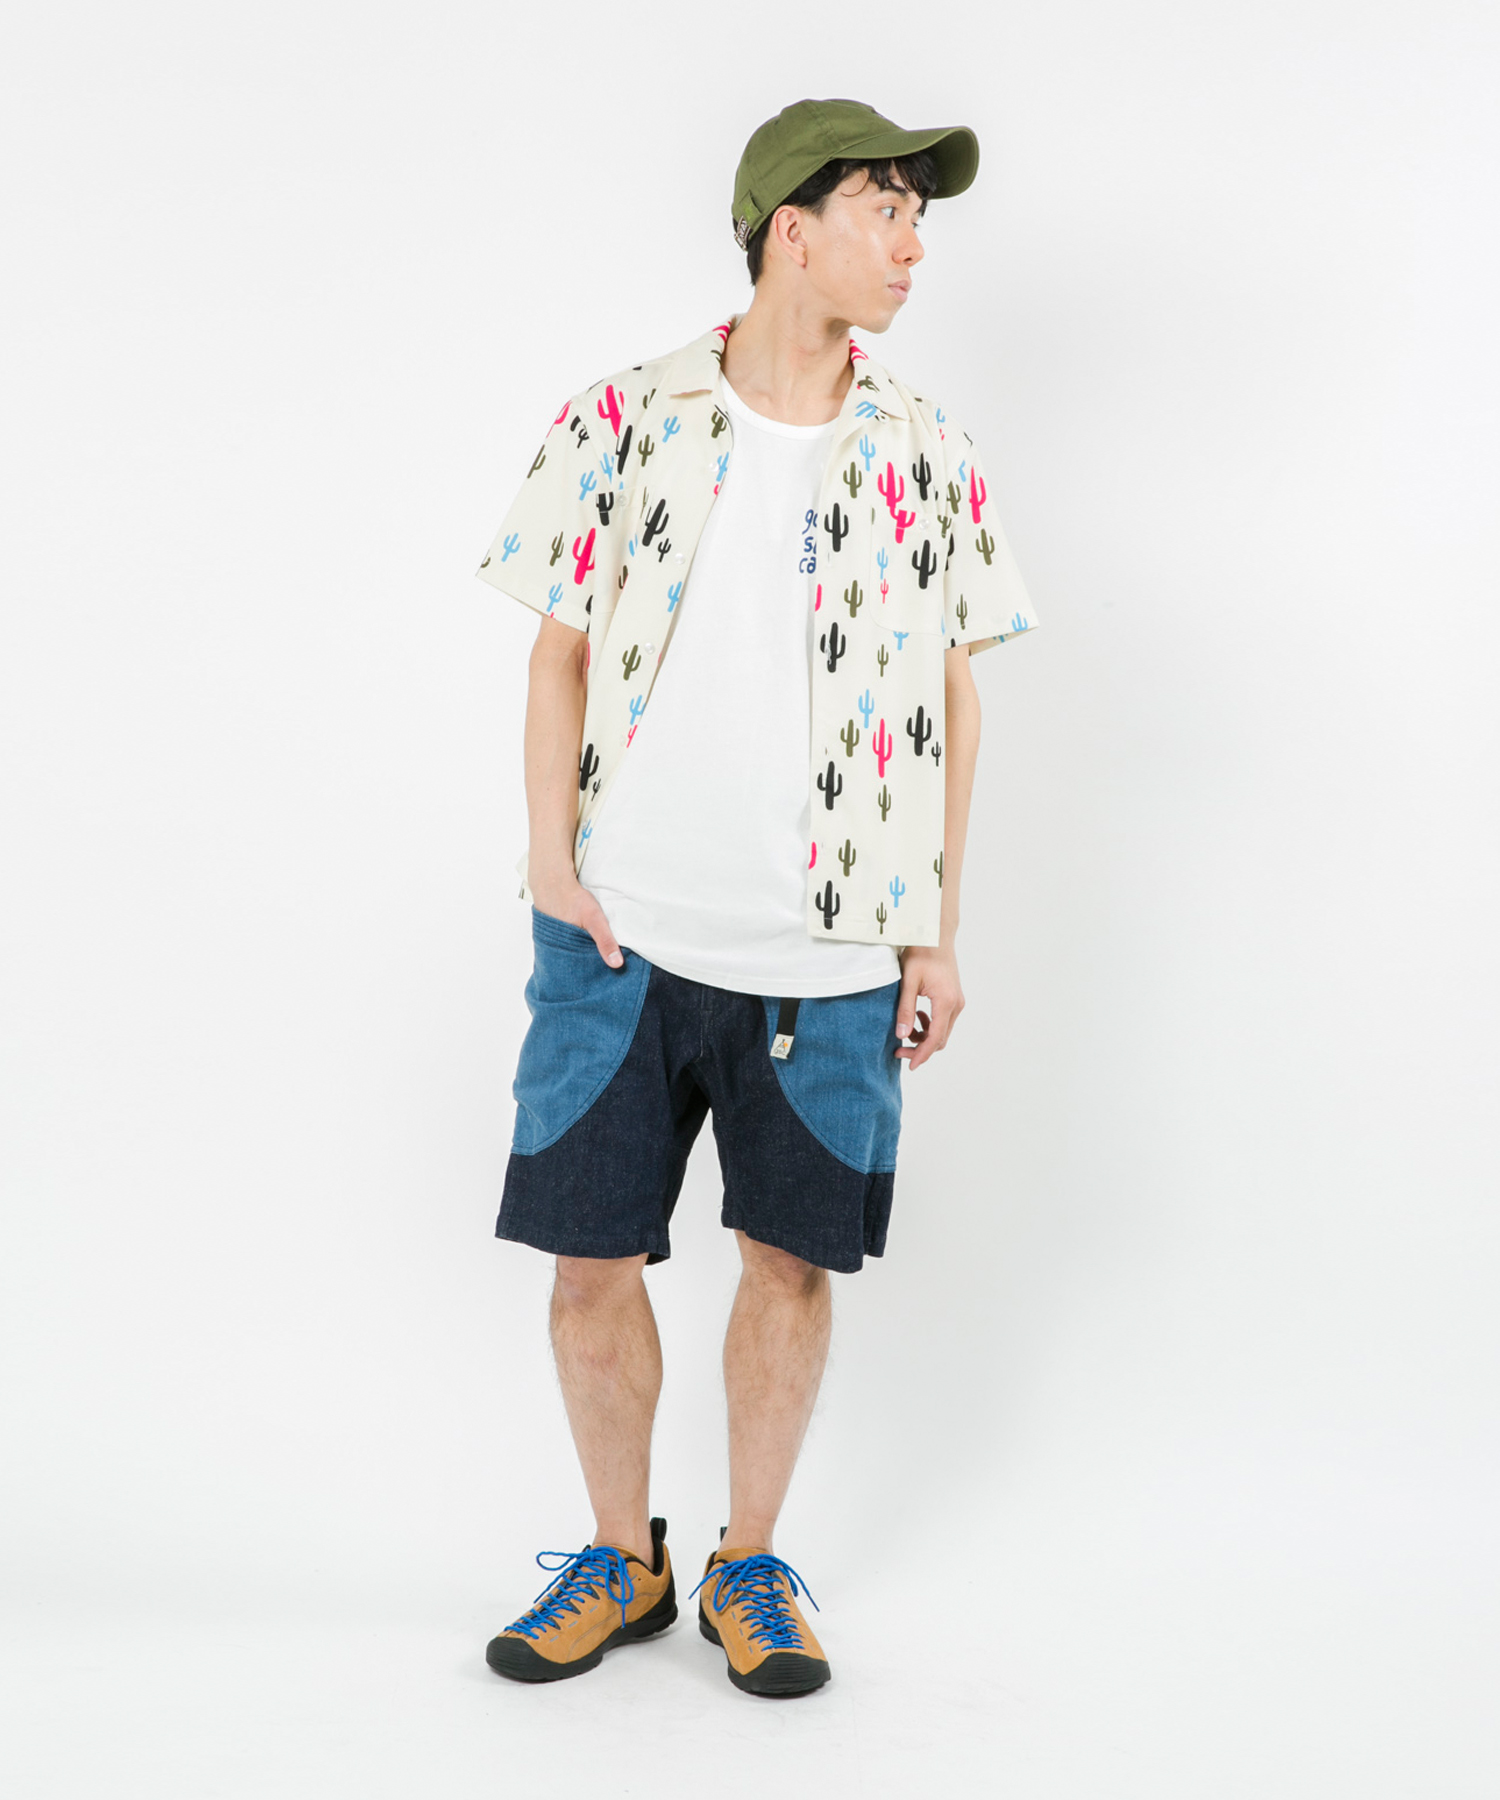 2018 S/S go slow caravan Coordinate Mens4